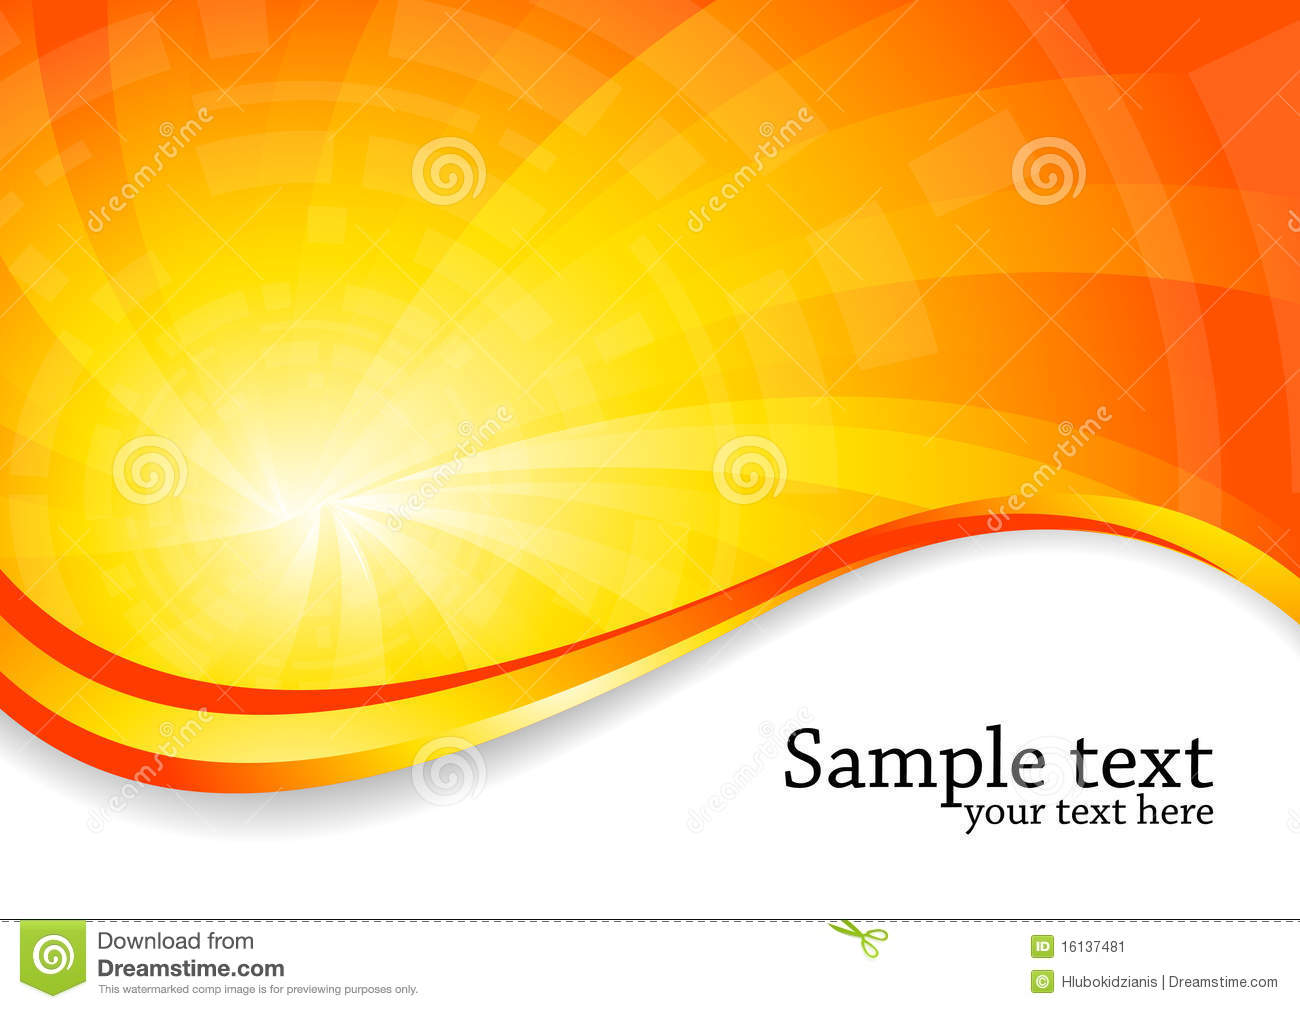 White Wave 3d Wallpaper Bright Background In Orange Color Stock Image Image